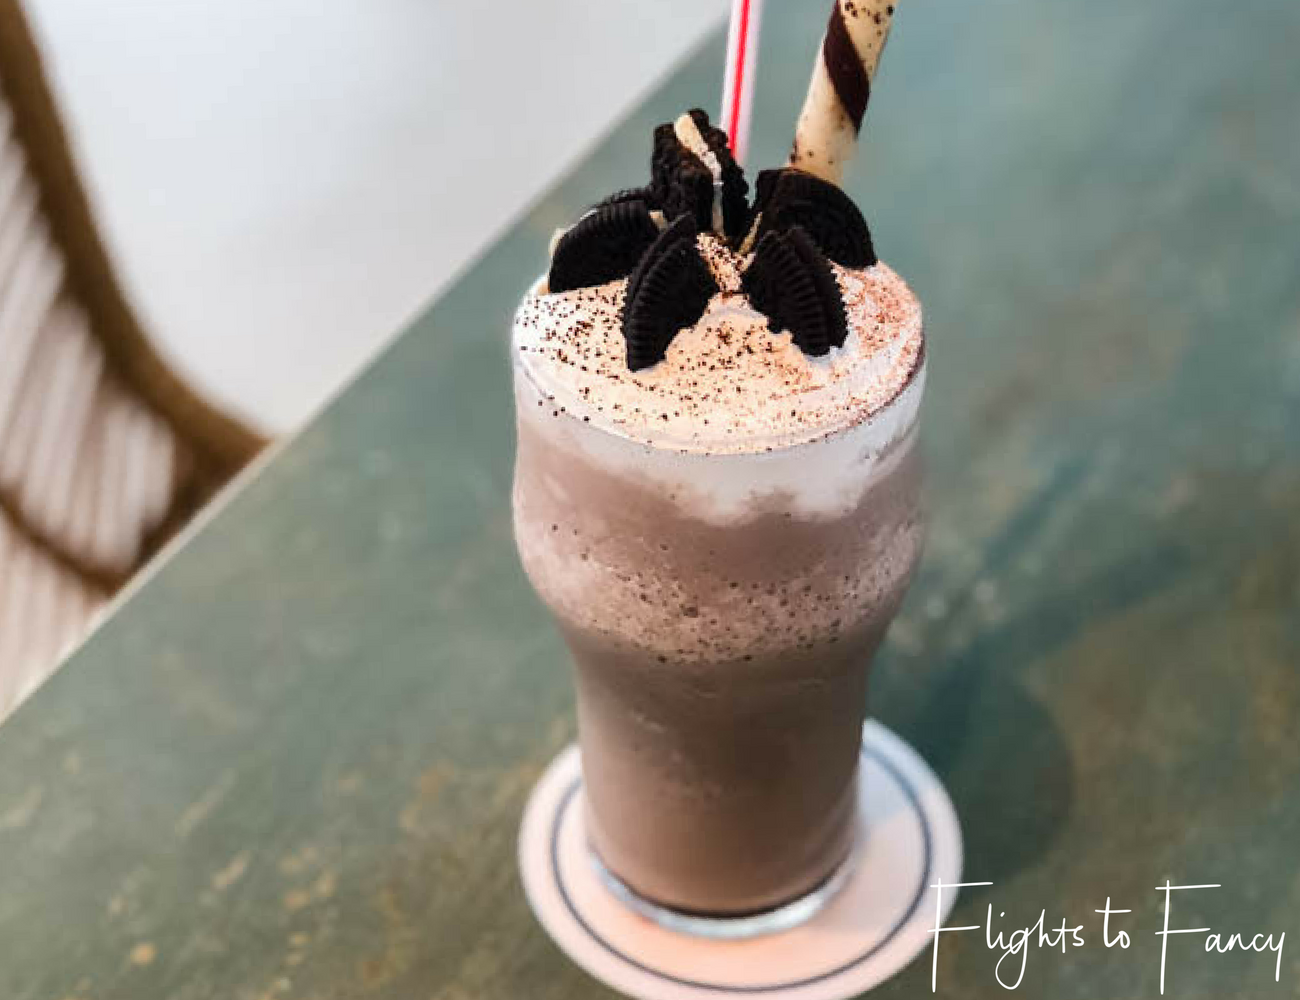 Flights To Fancy at Cha Cha's Boracay - Milkshake